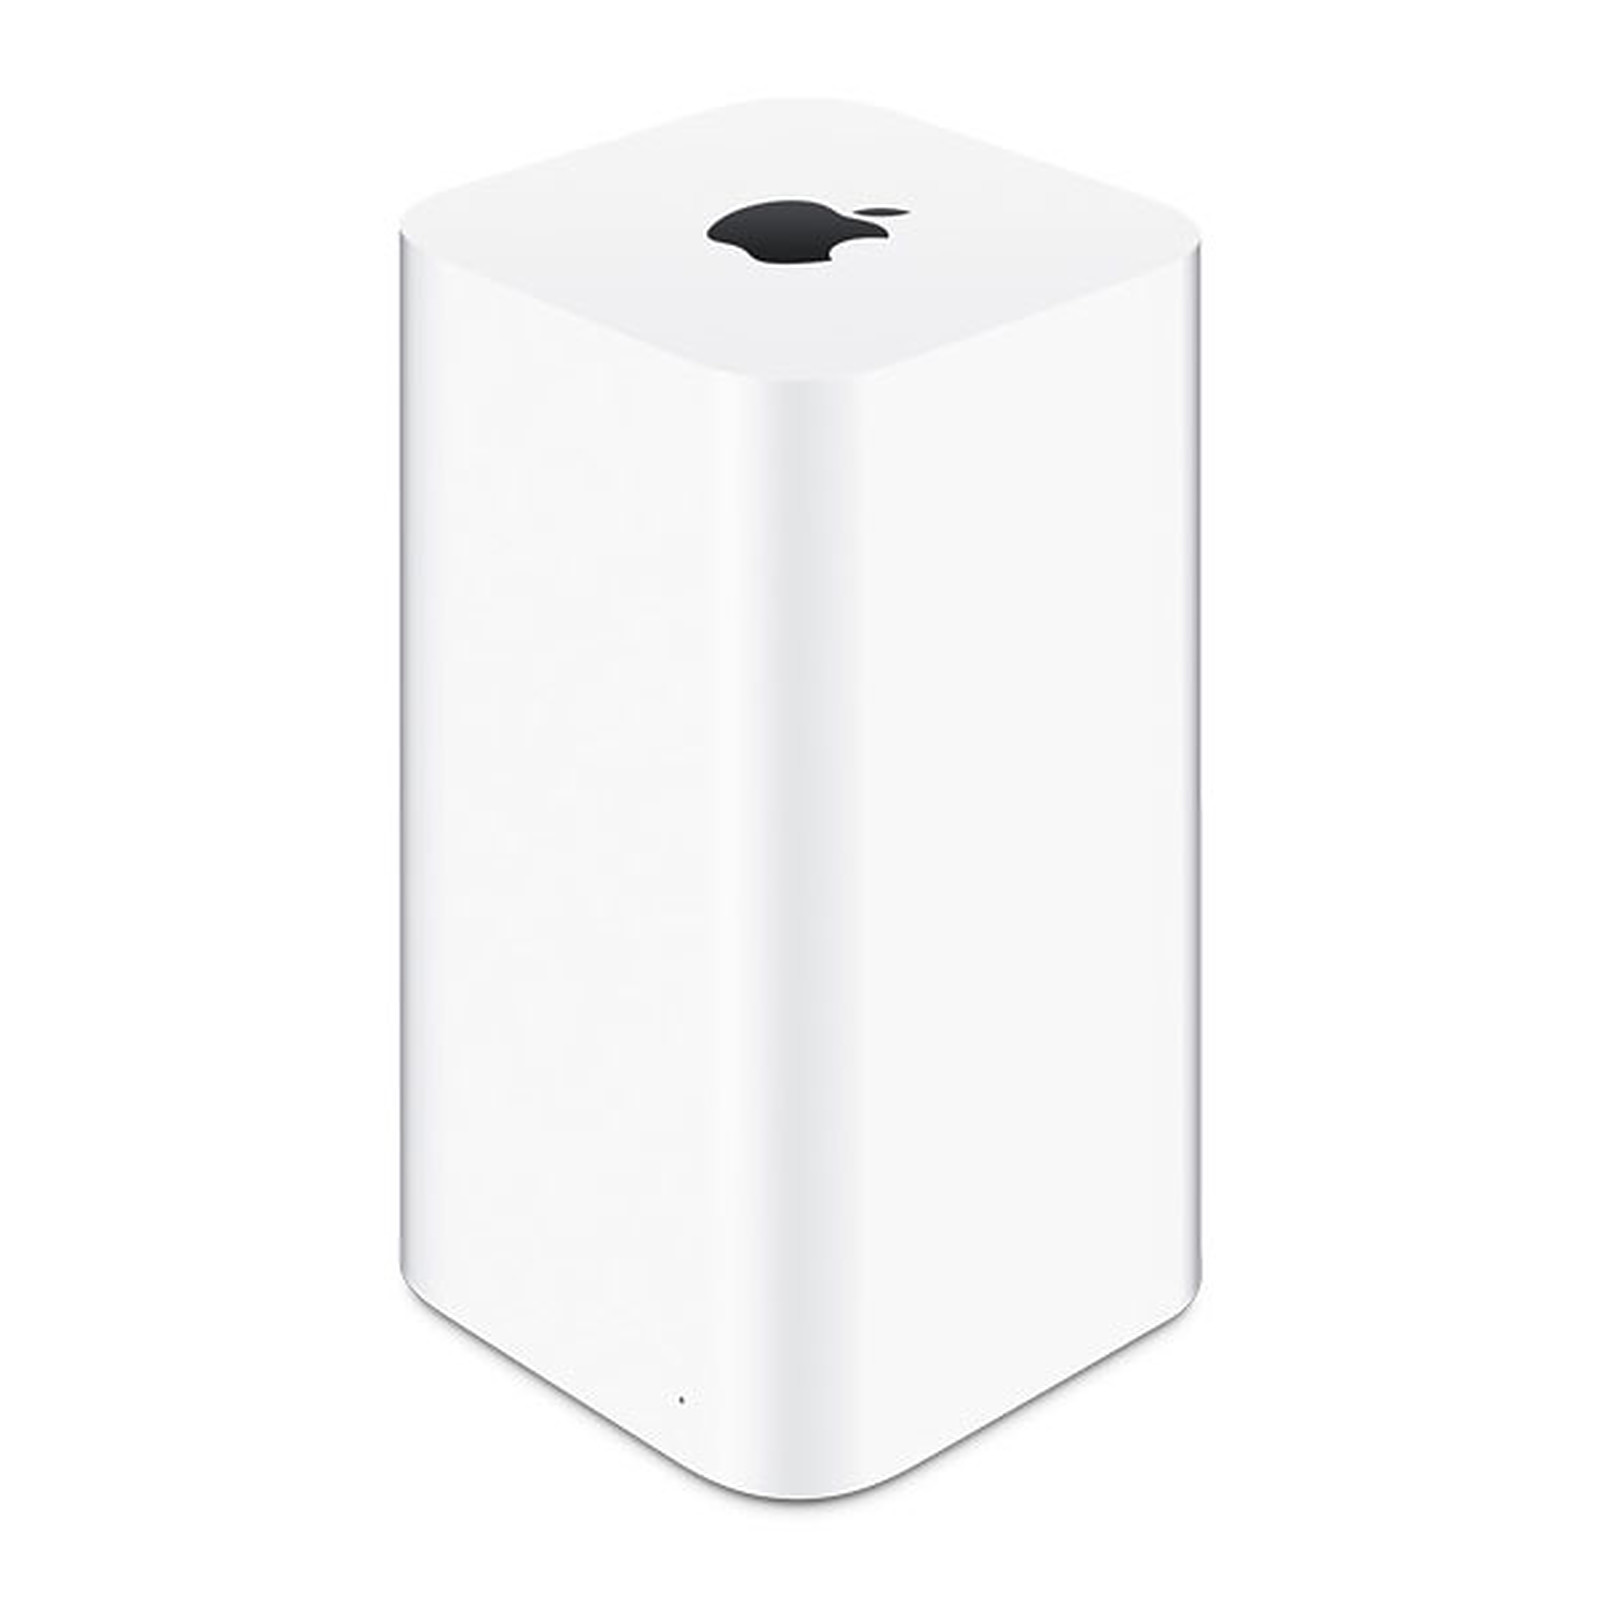 apple airport time capsule 2 to accessoires apple apple sur. Black Bedroom Furniture Sets. Home Design Ideas